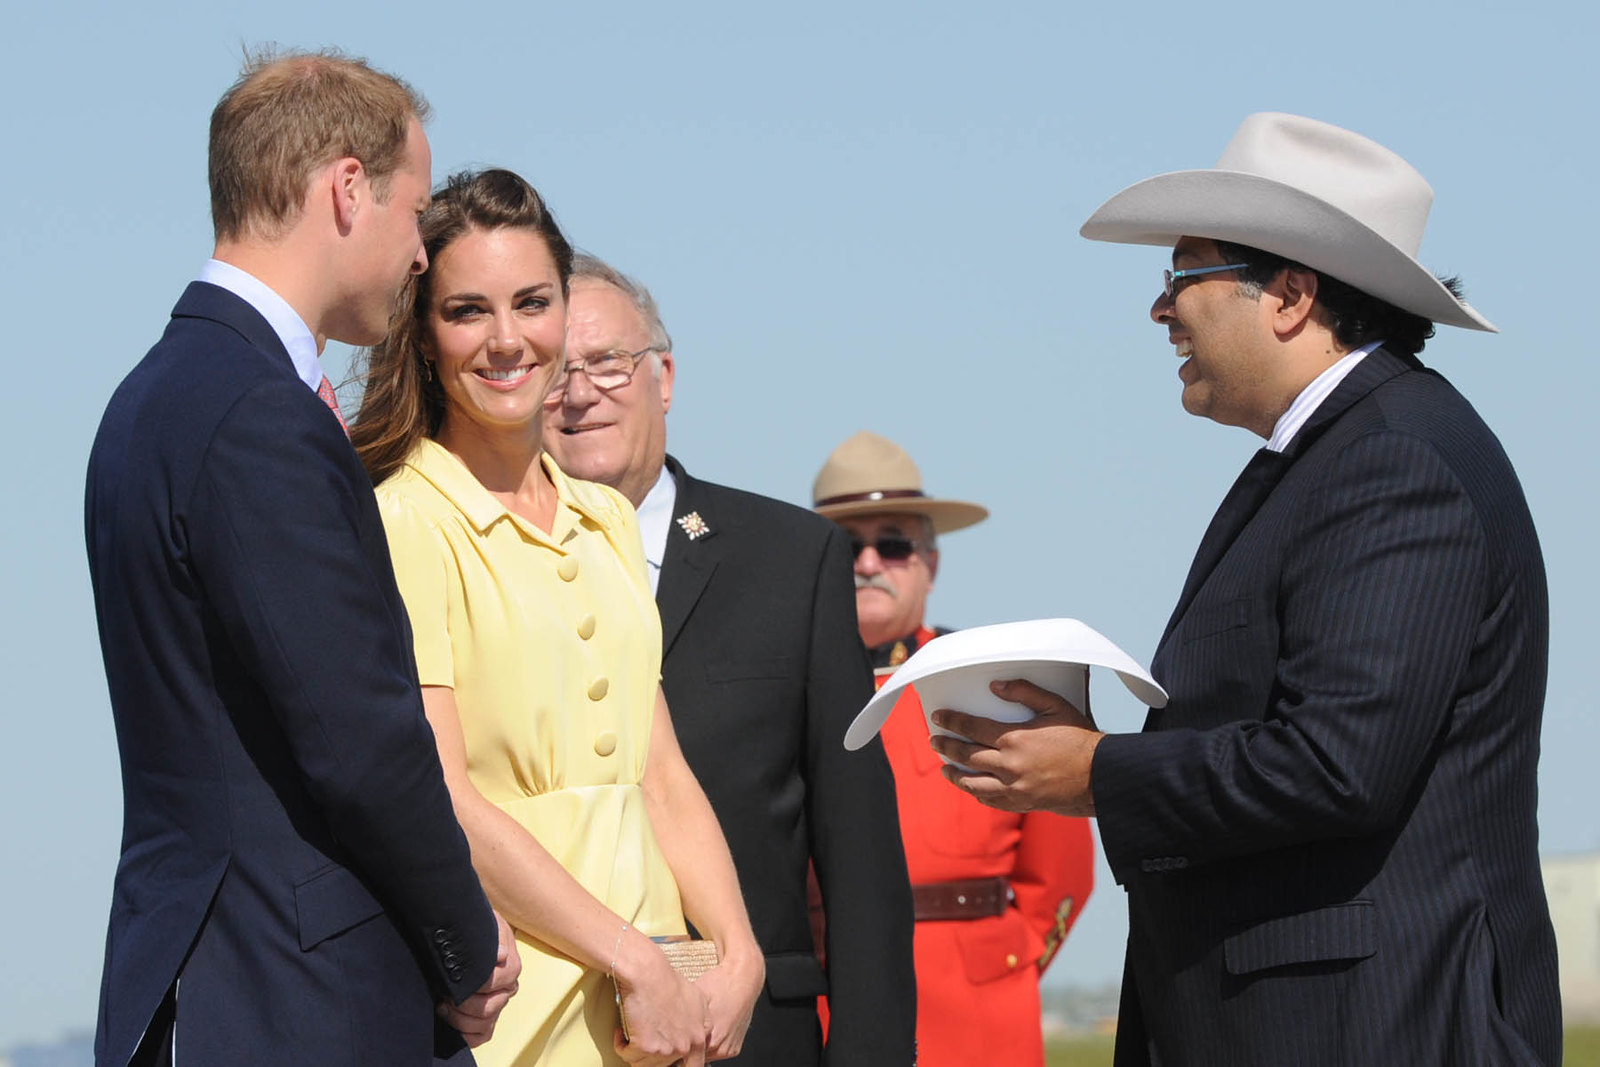 the Duke and Duchess of Cambridge received traditional headgear in calgary